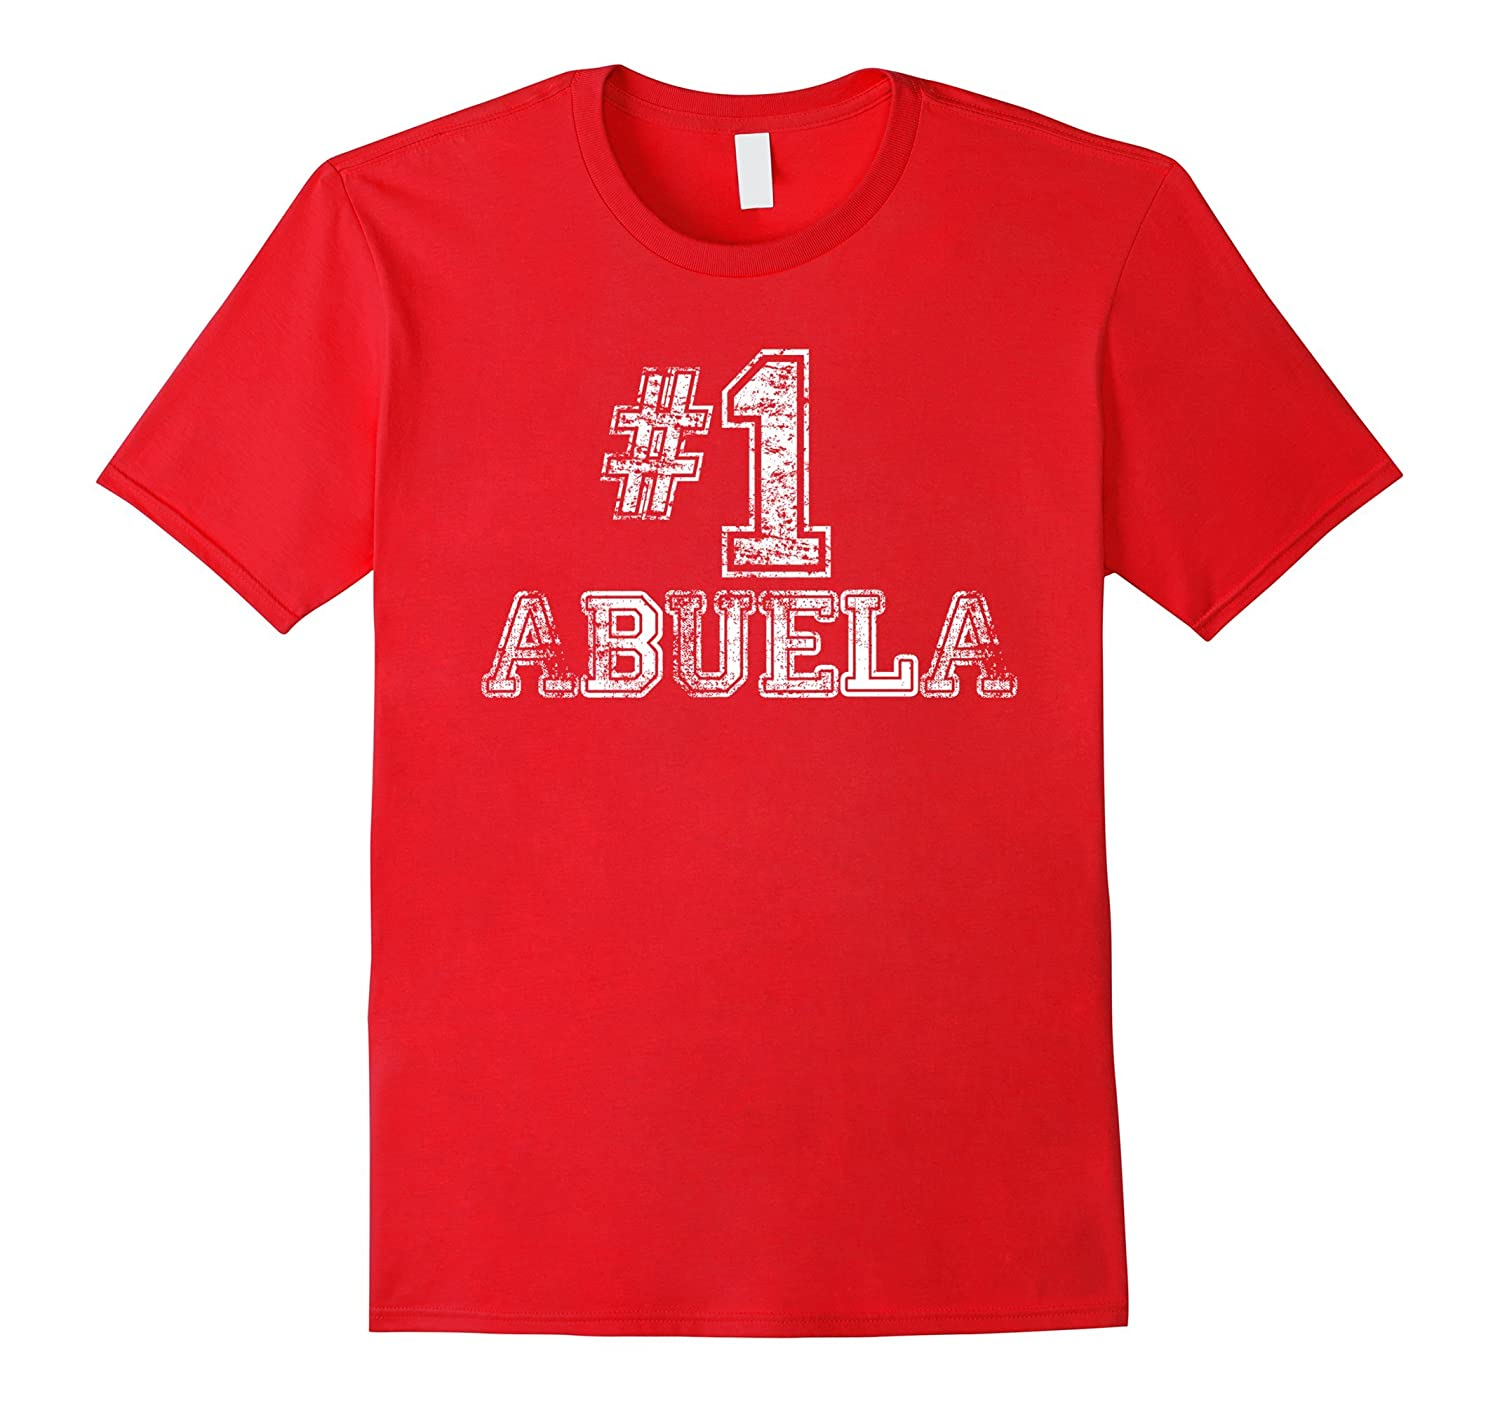 1 Abuela T Shirt - Number One Grandmother Mother Gift Tee-TD